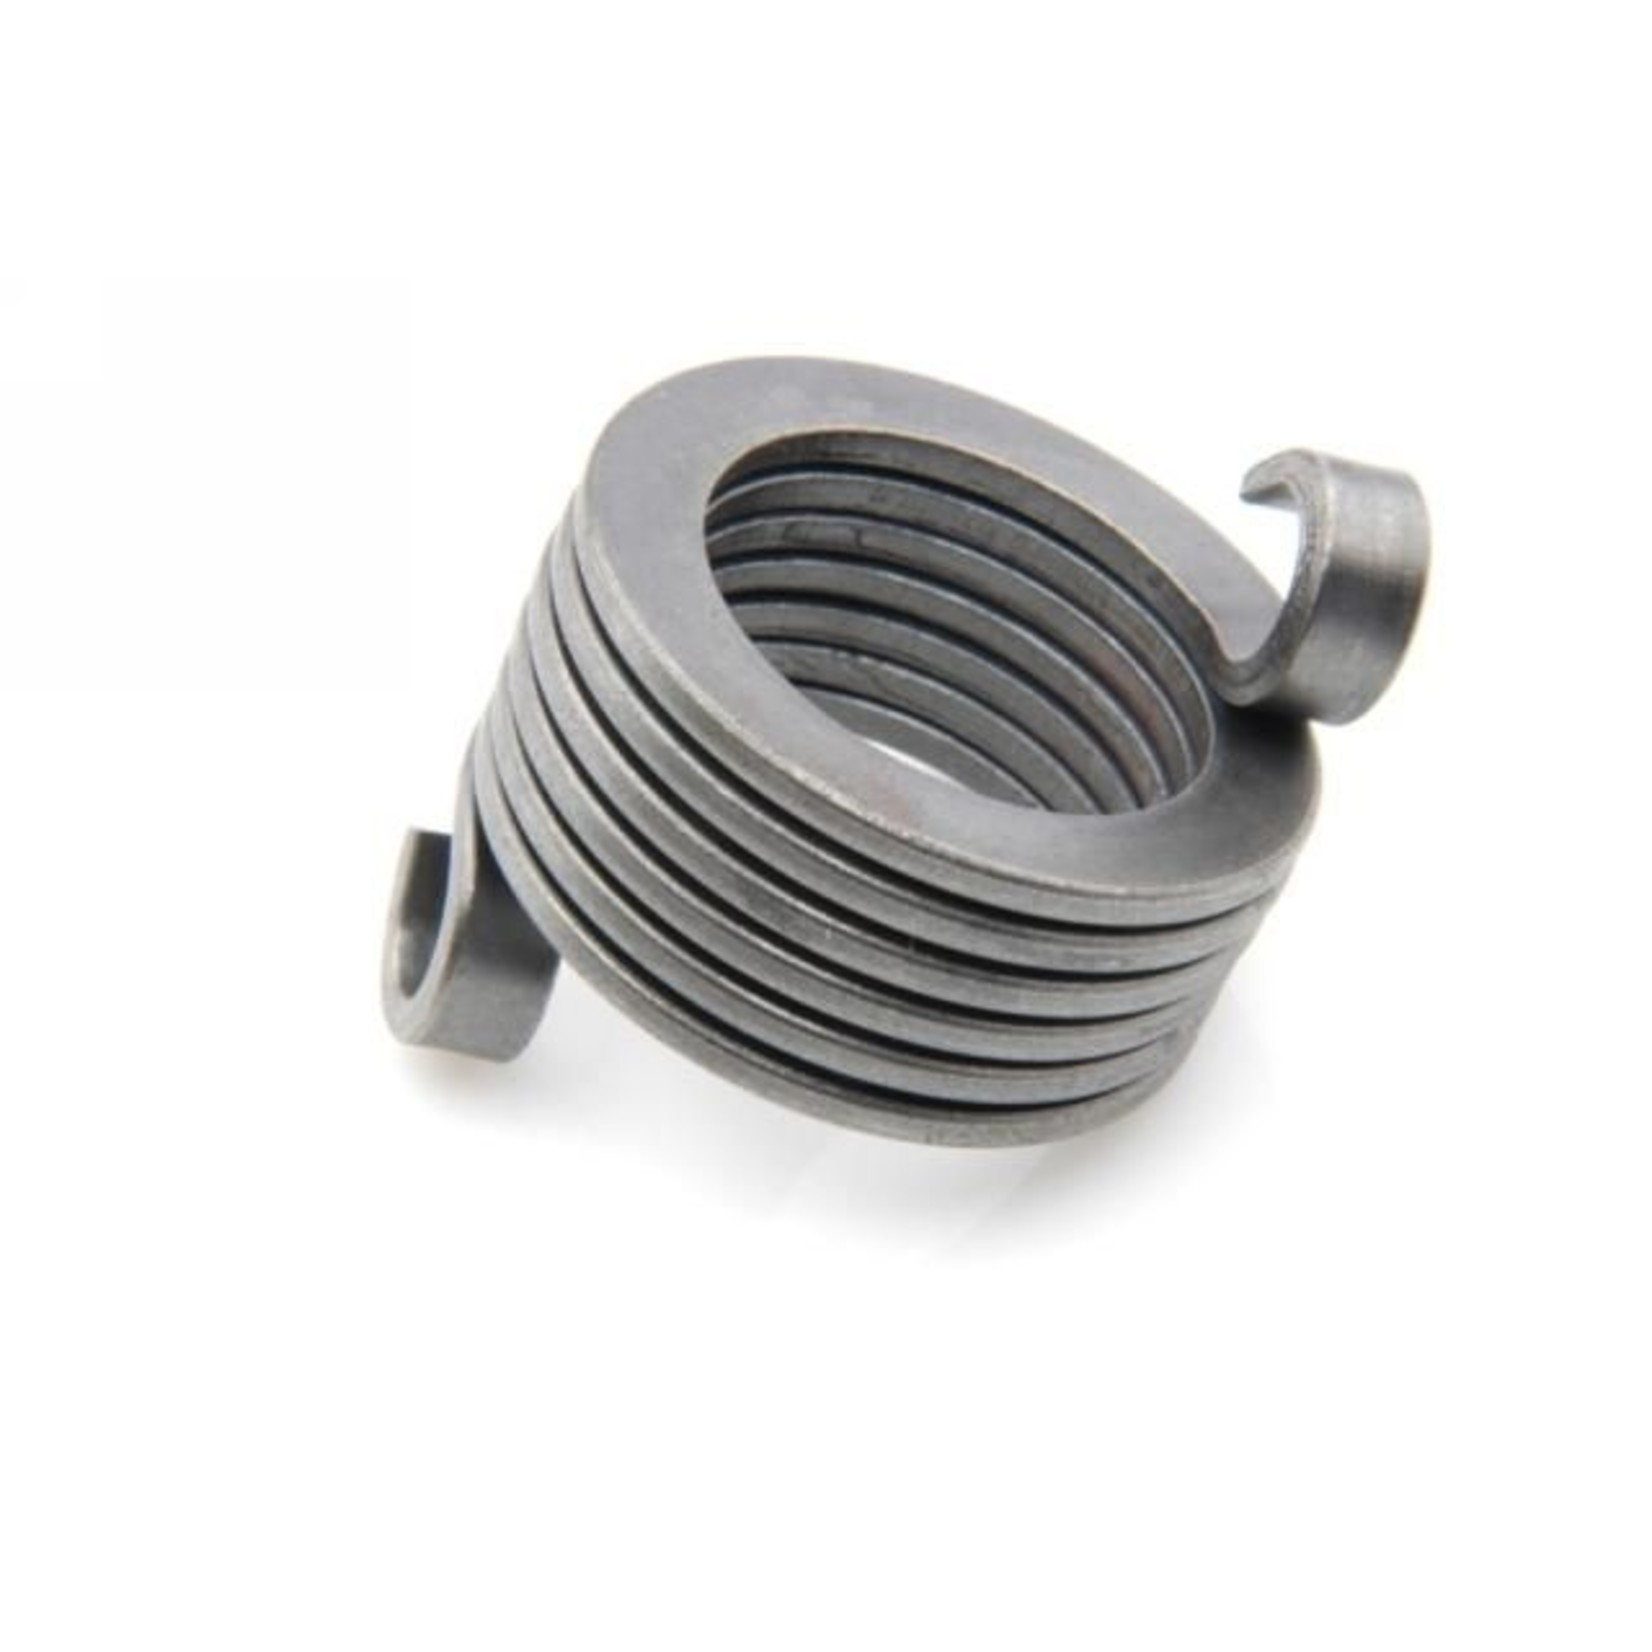 Spring pinion drive (round + ear) -68 Ducellier Nr Org: 701805